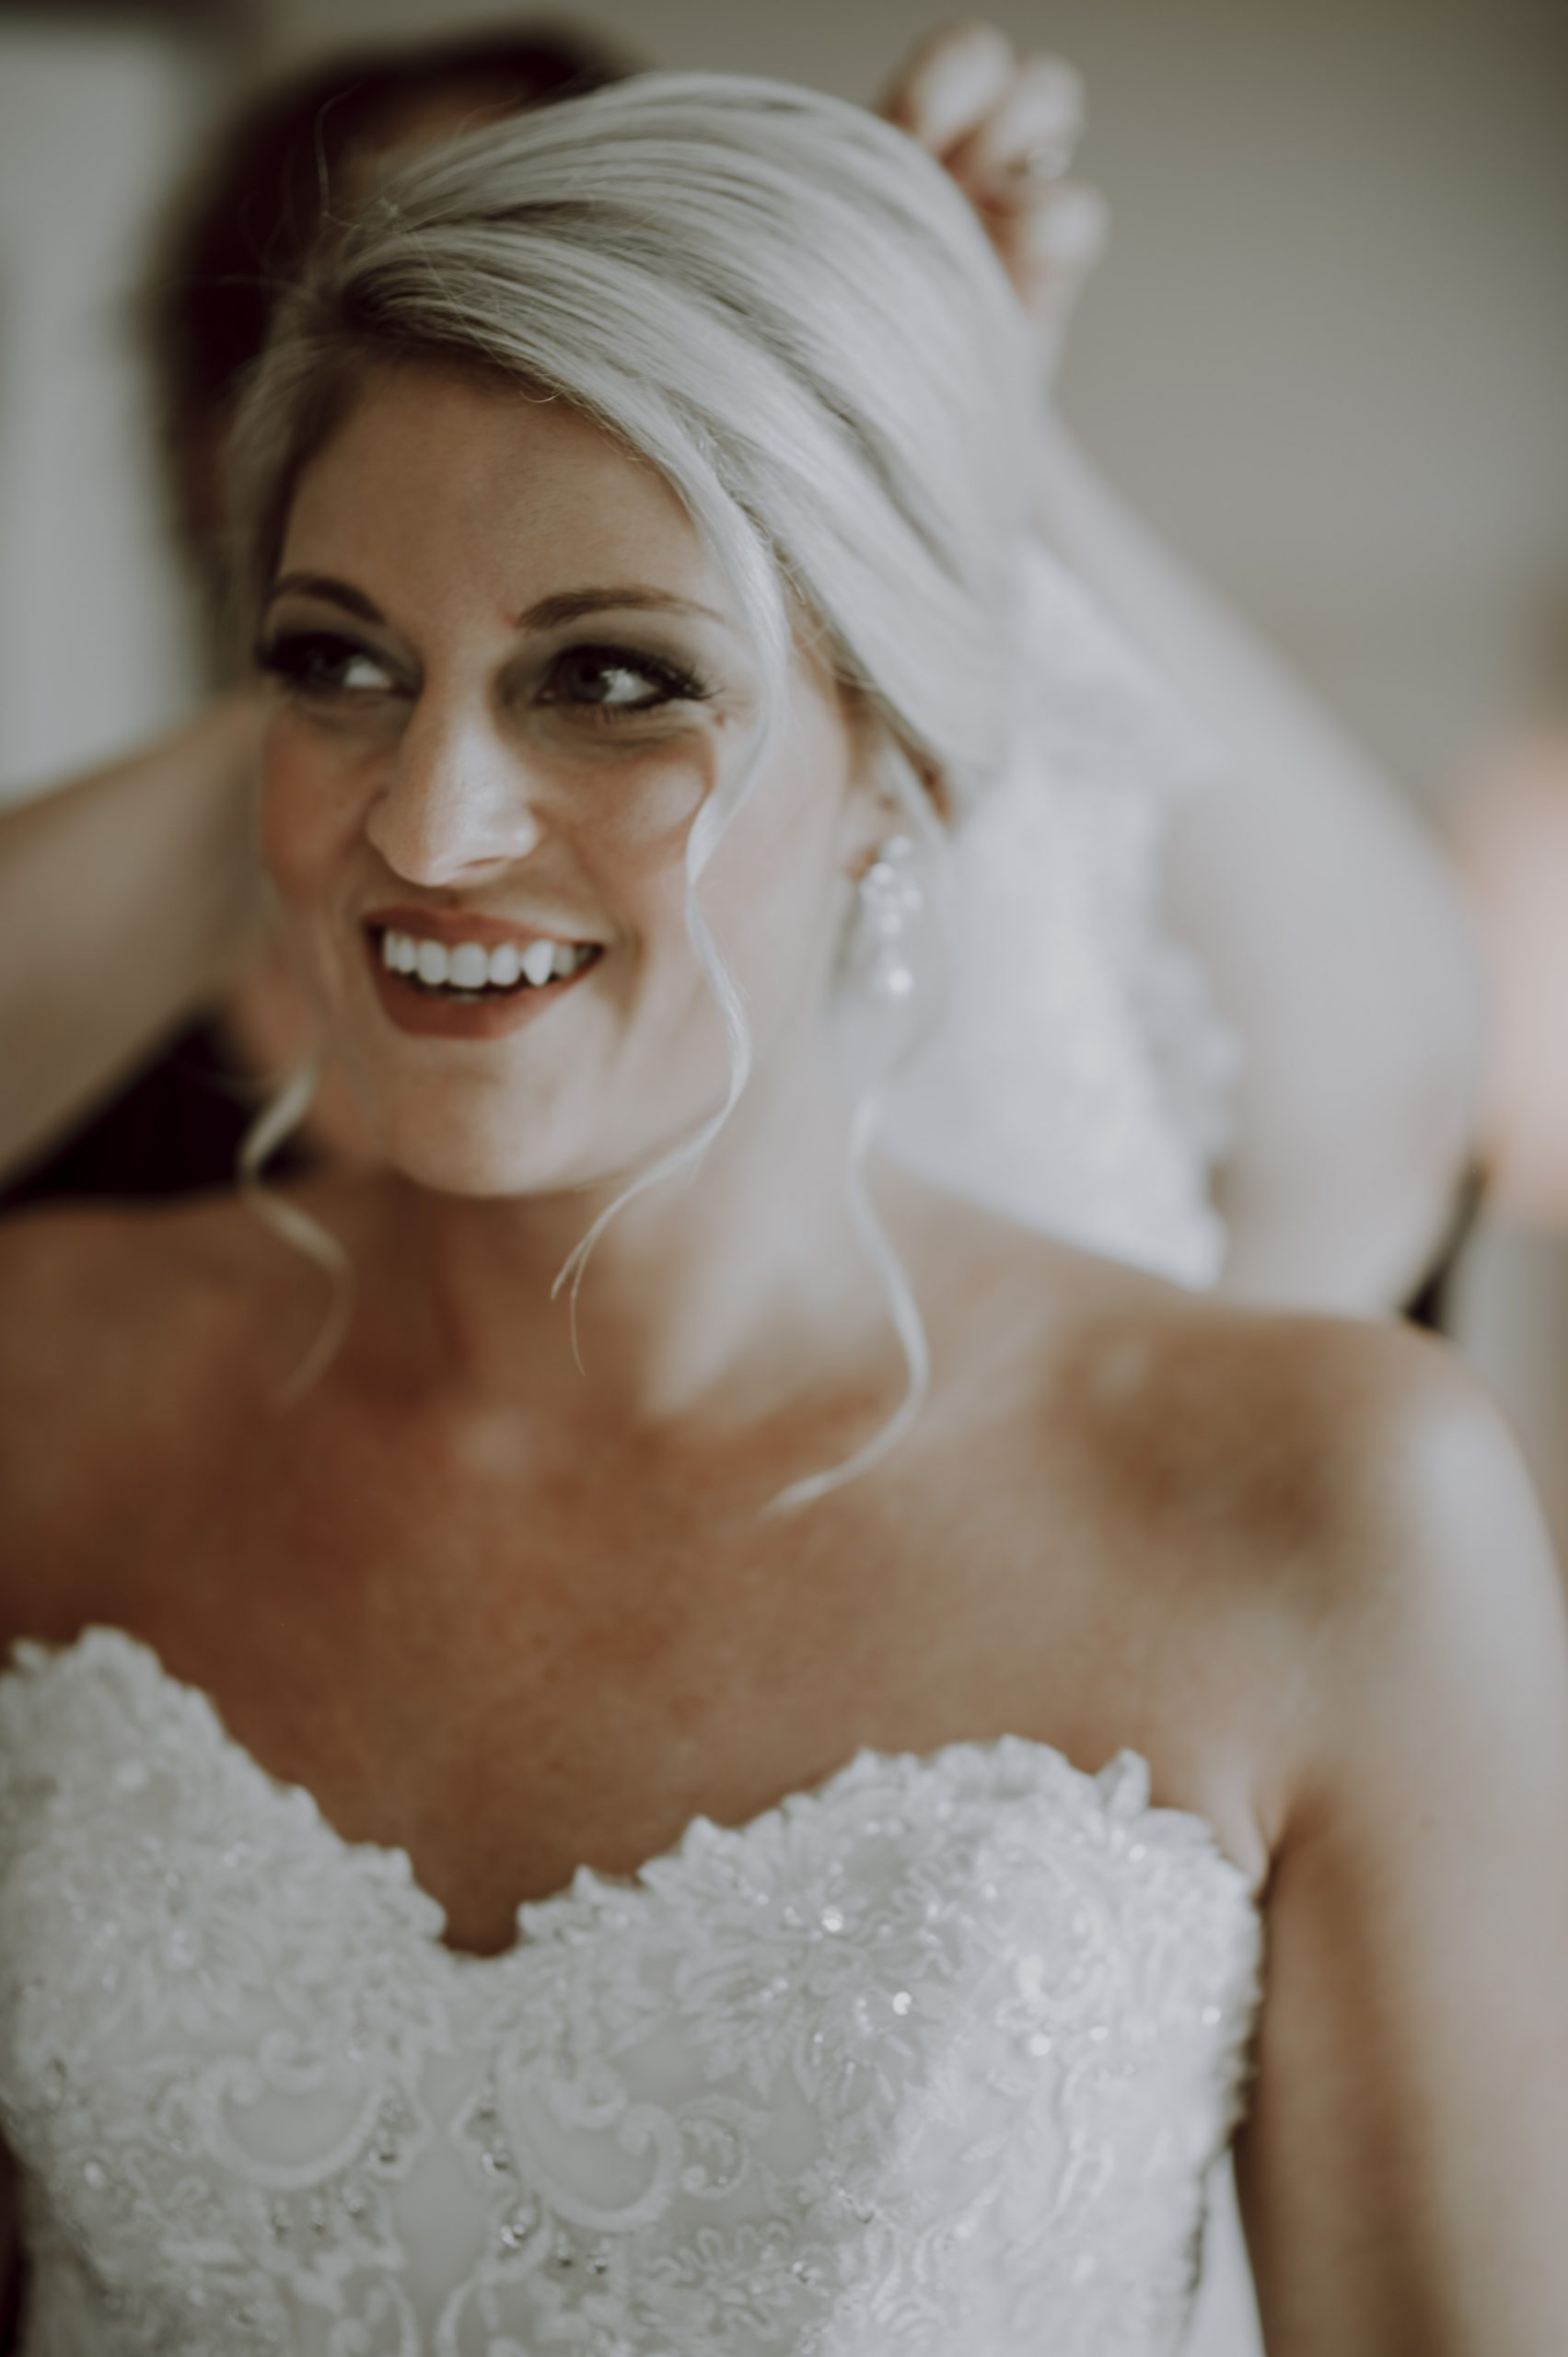 A sparkling sweetheart wedding dress that would catch the eye of any groom. Captured by Lovefusion Photography at Stock's Manor in Mechanicsburg, PA. Featured on Dream Weddings.